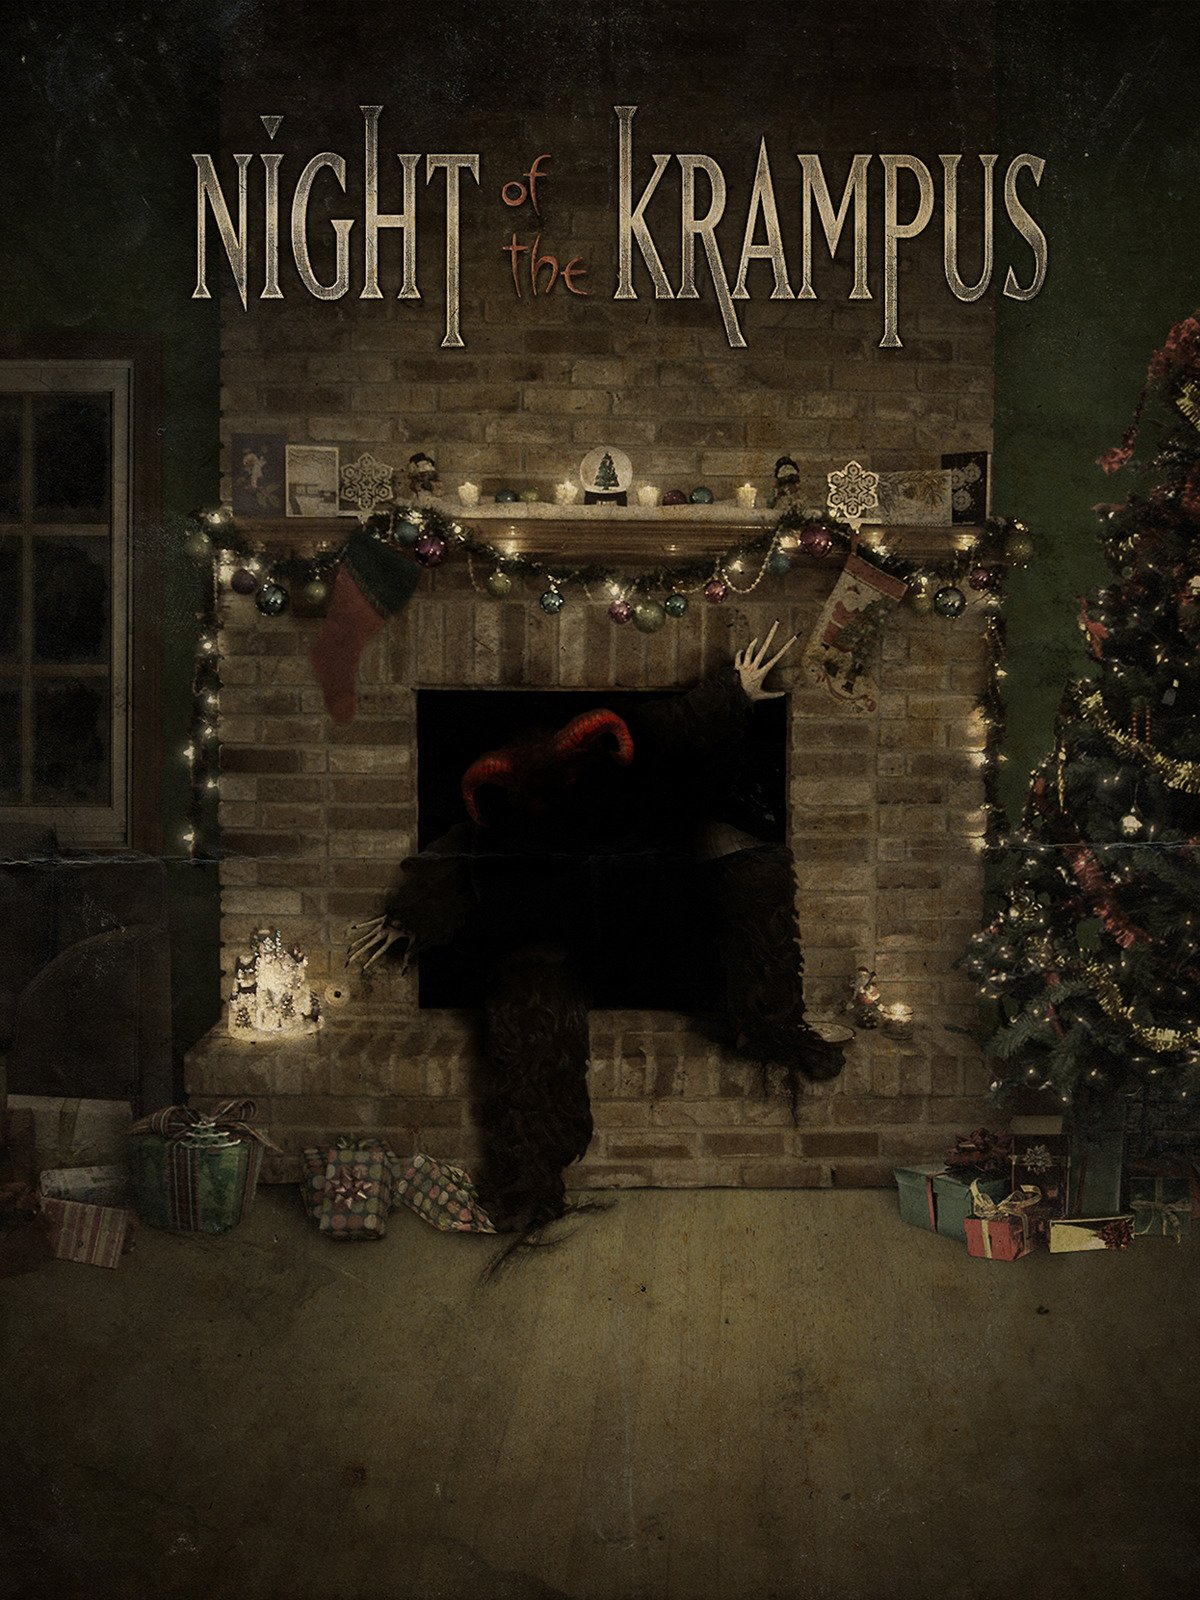 Night of the Krampus